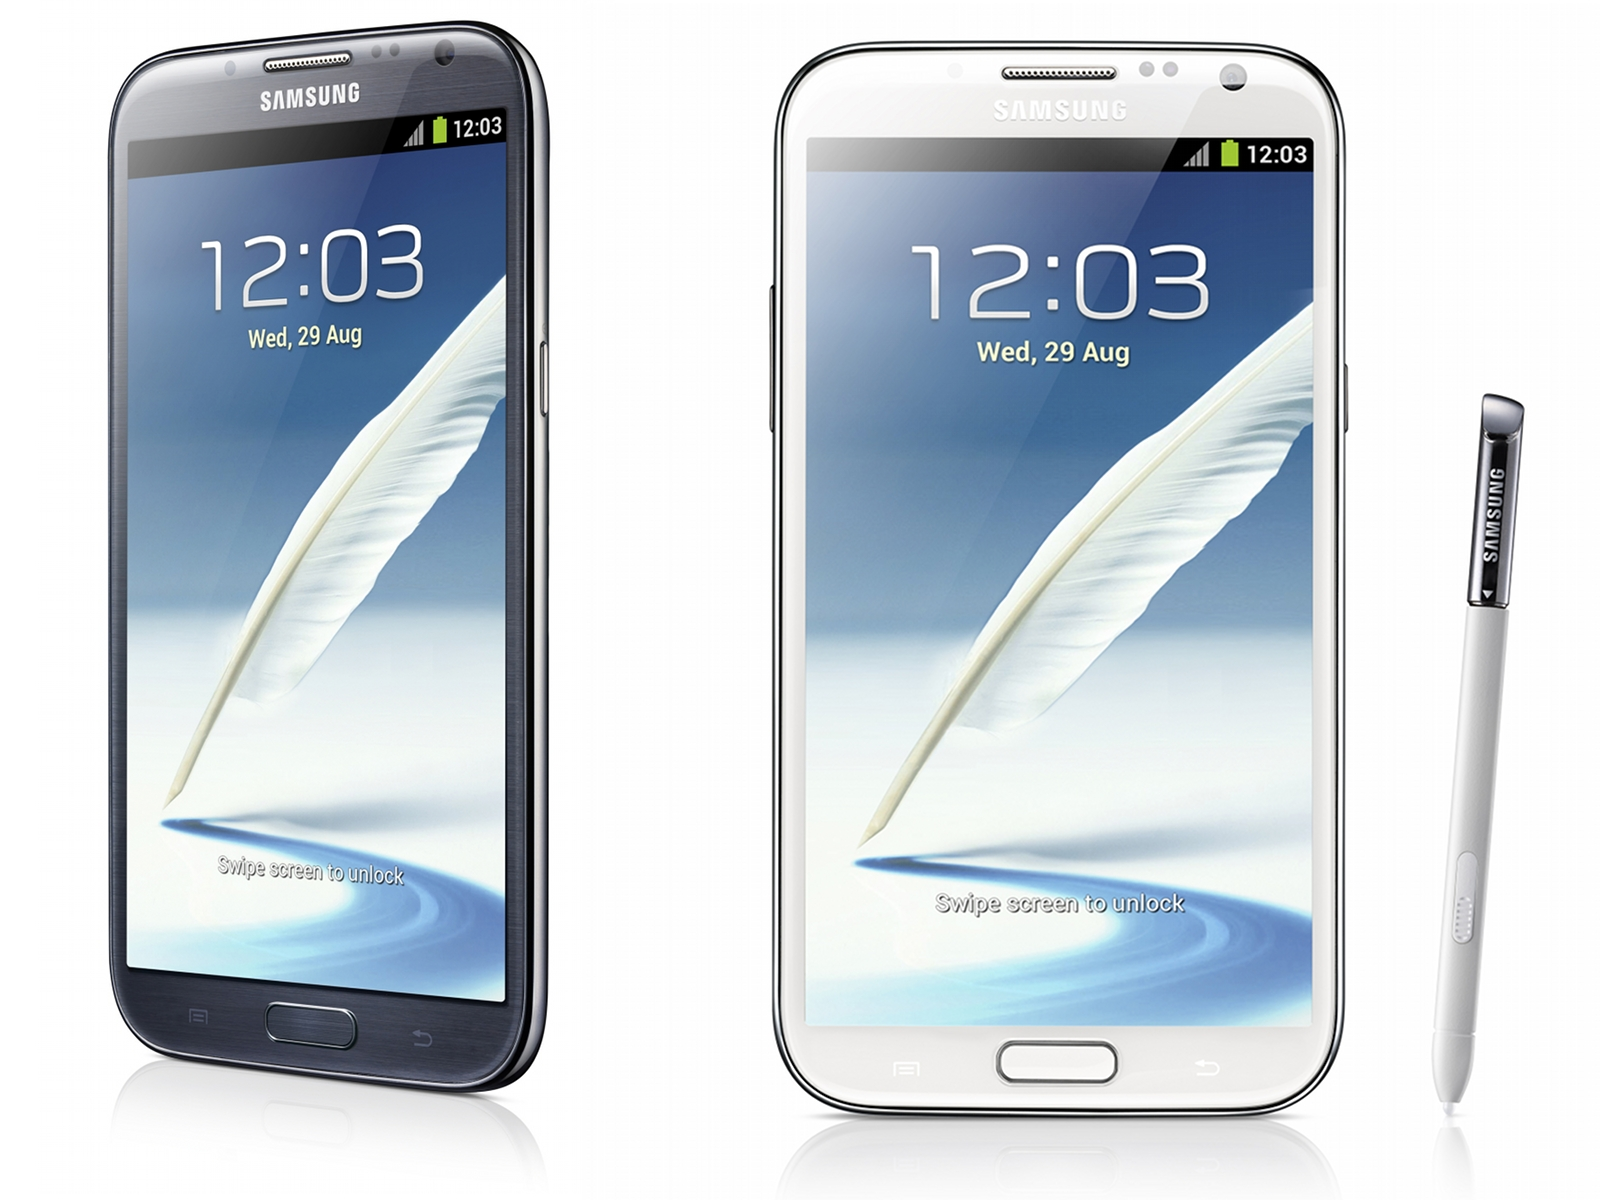 samsung saw fit to reveal the successor to their galaxy note at